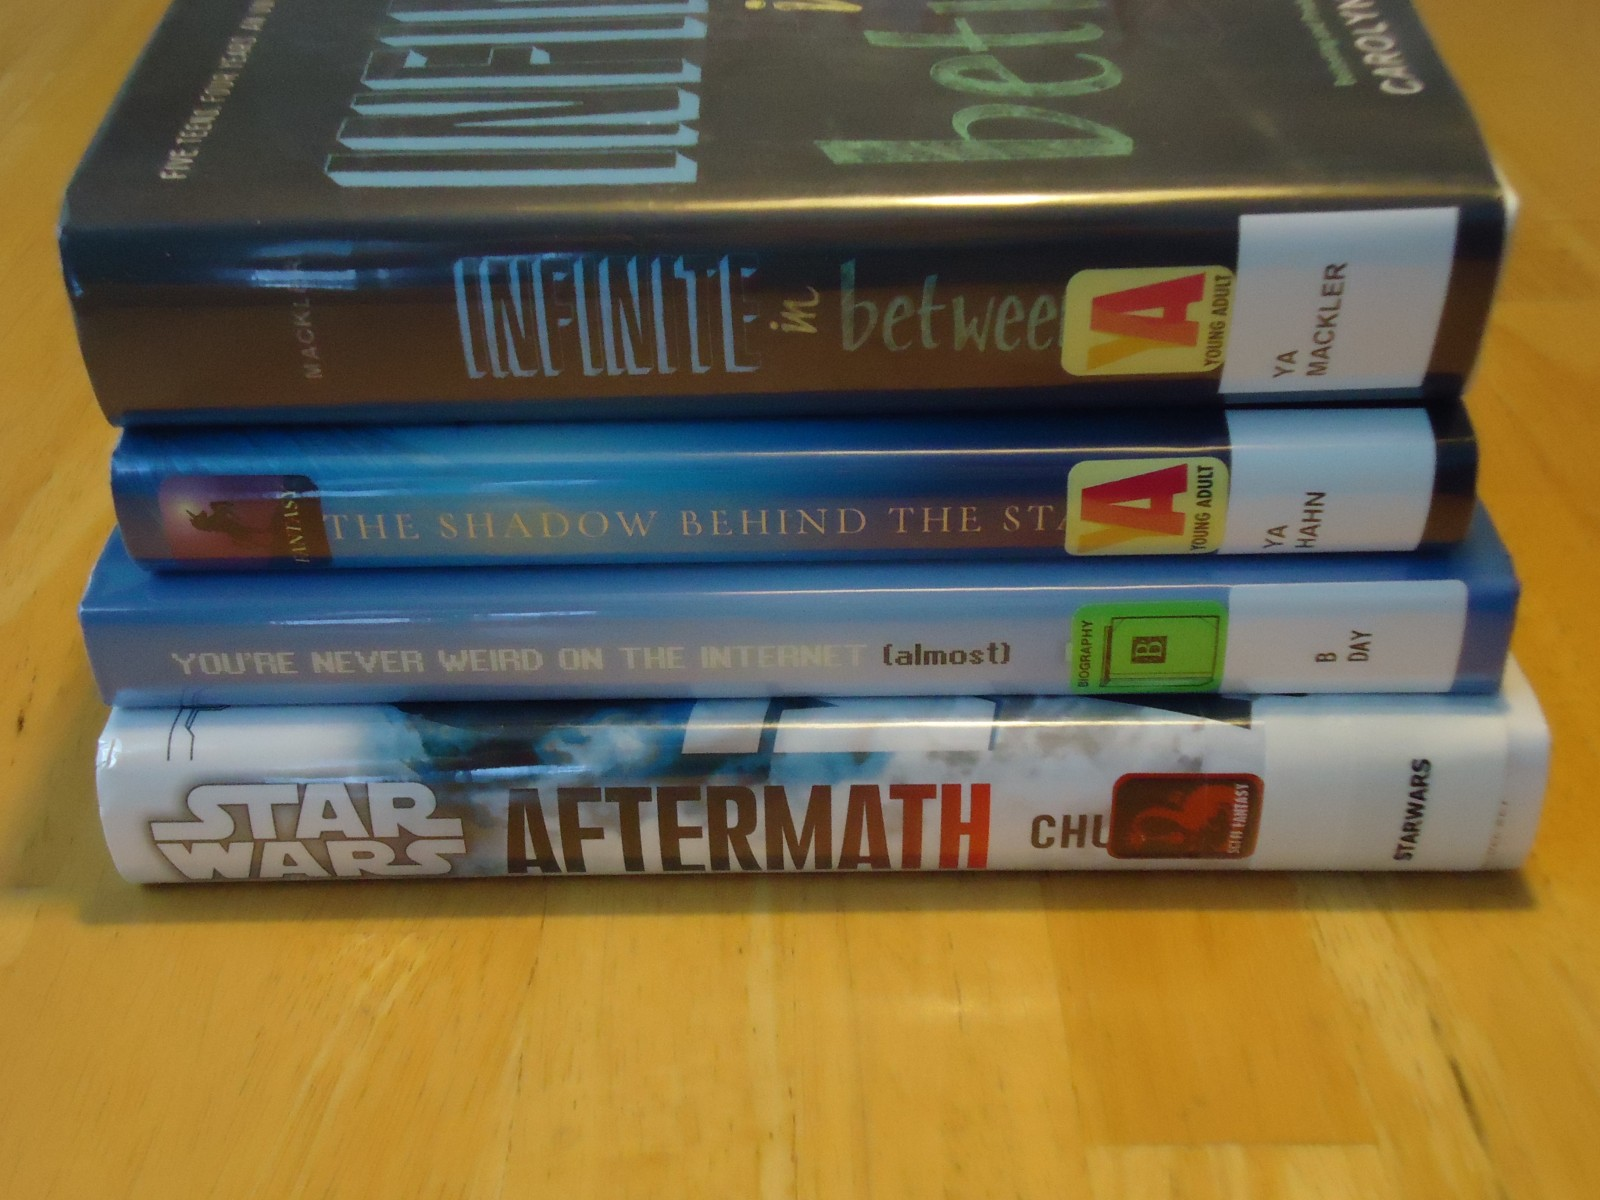 Library Haul & Reading List 9/18/15